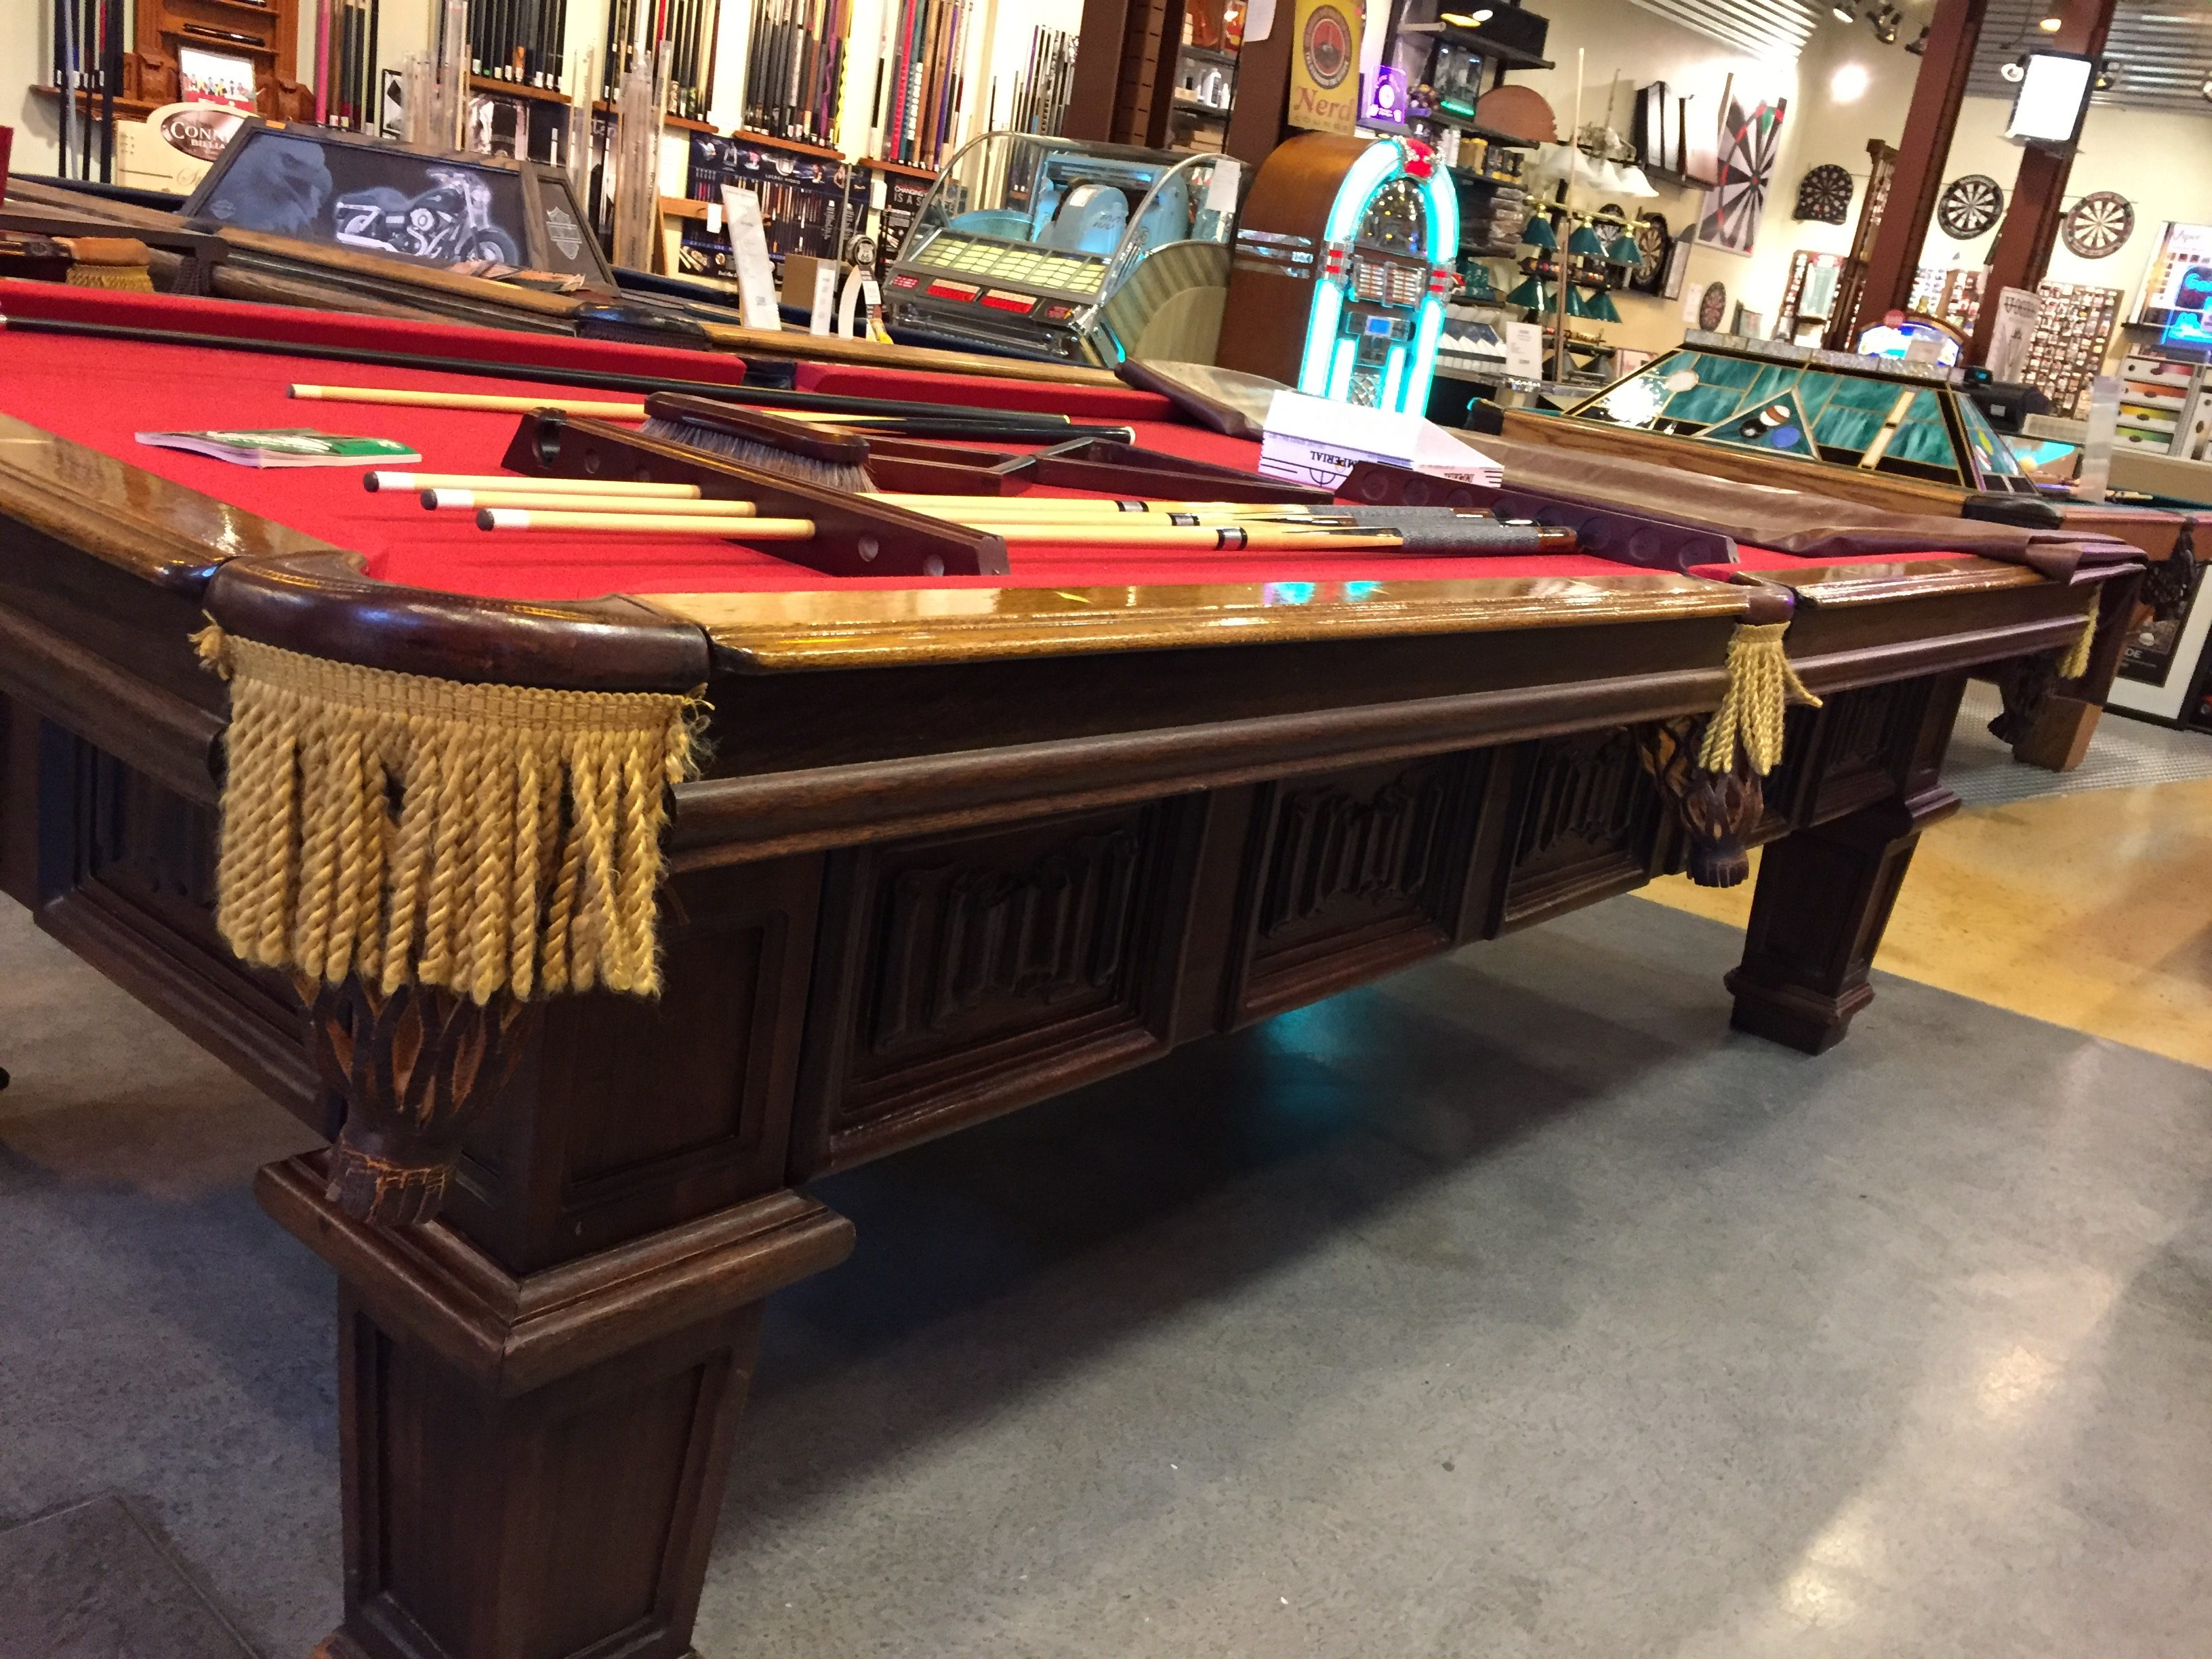 1950 9ft Antique Brunswick Pool Table U2013 Included With The Antique 1950  Brunswick Table, New Cloth In Your Choice Of Color, A Players Kit With All  ...